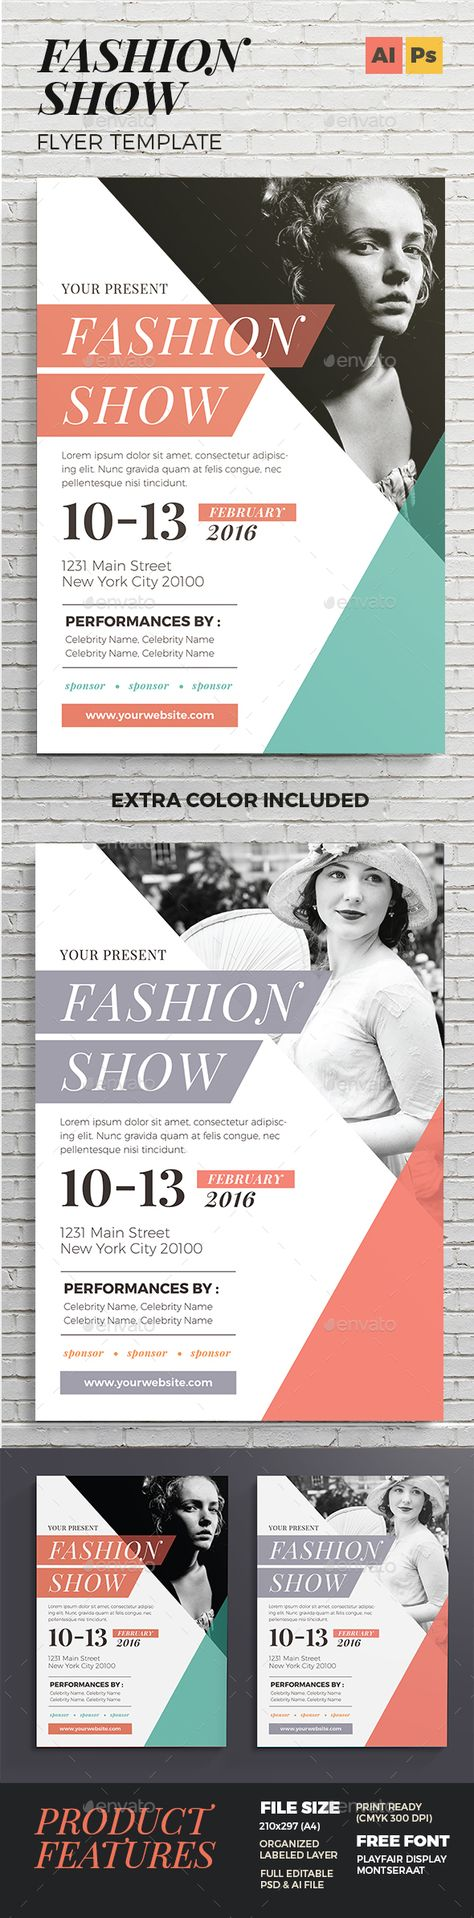 Fashion Show Flyer Flyer Template Graphic Design Inspiration And - Yearbook flyer template